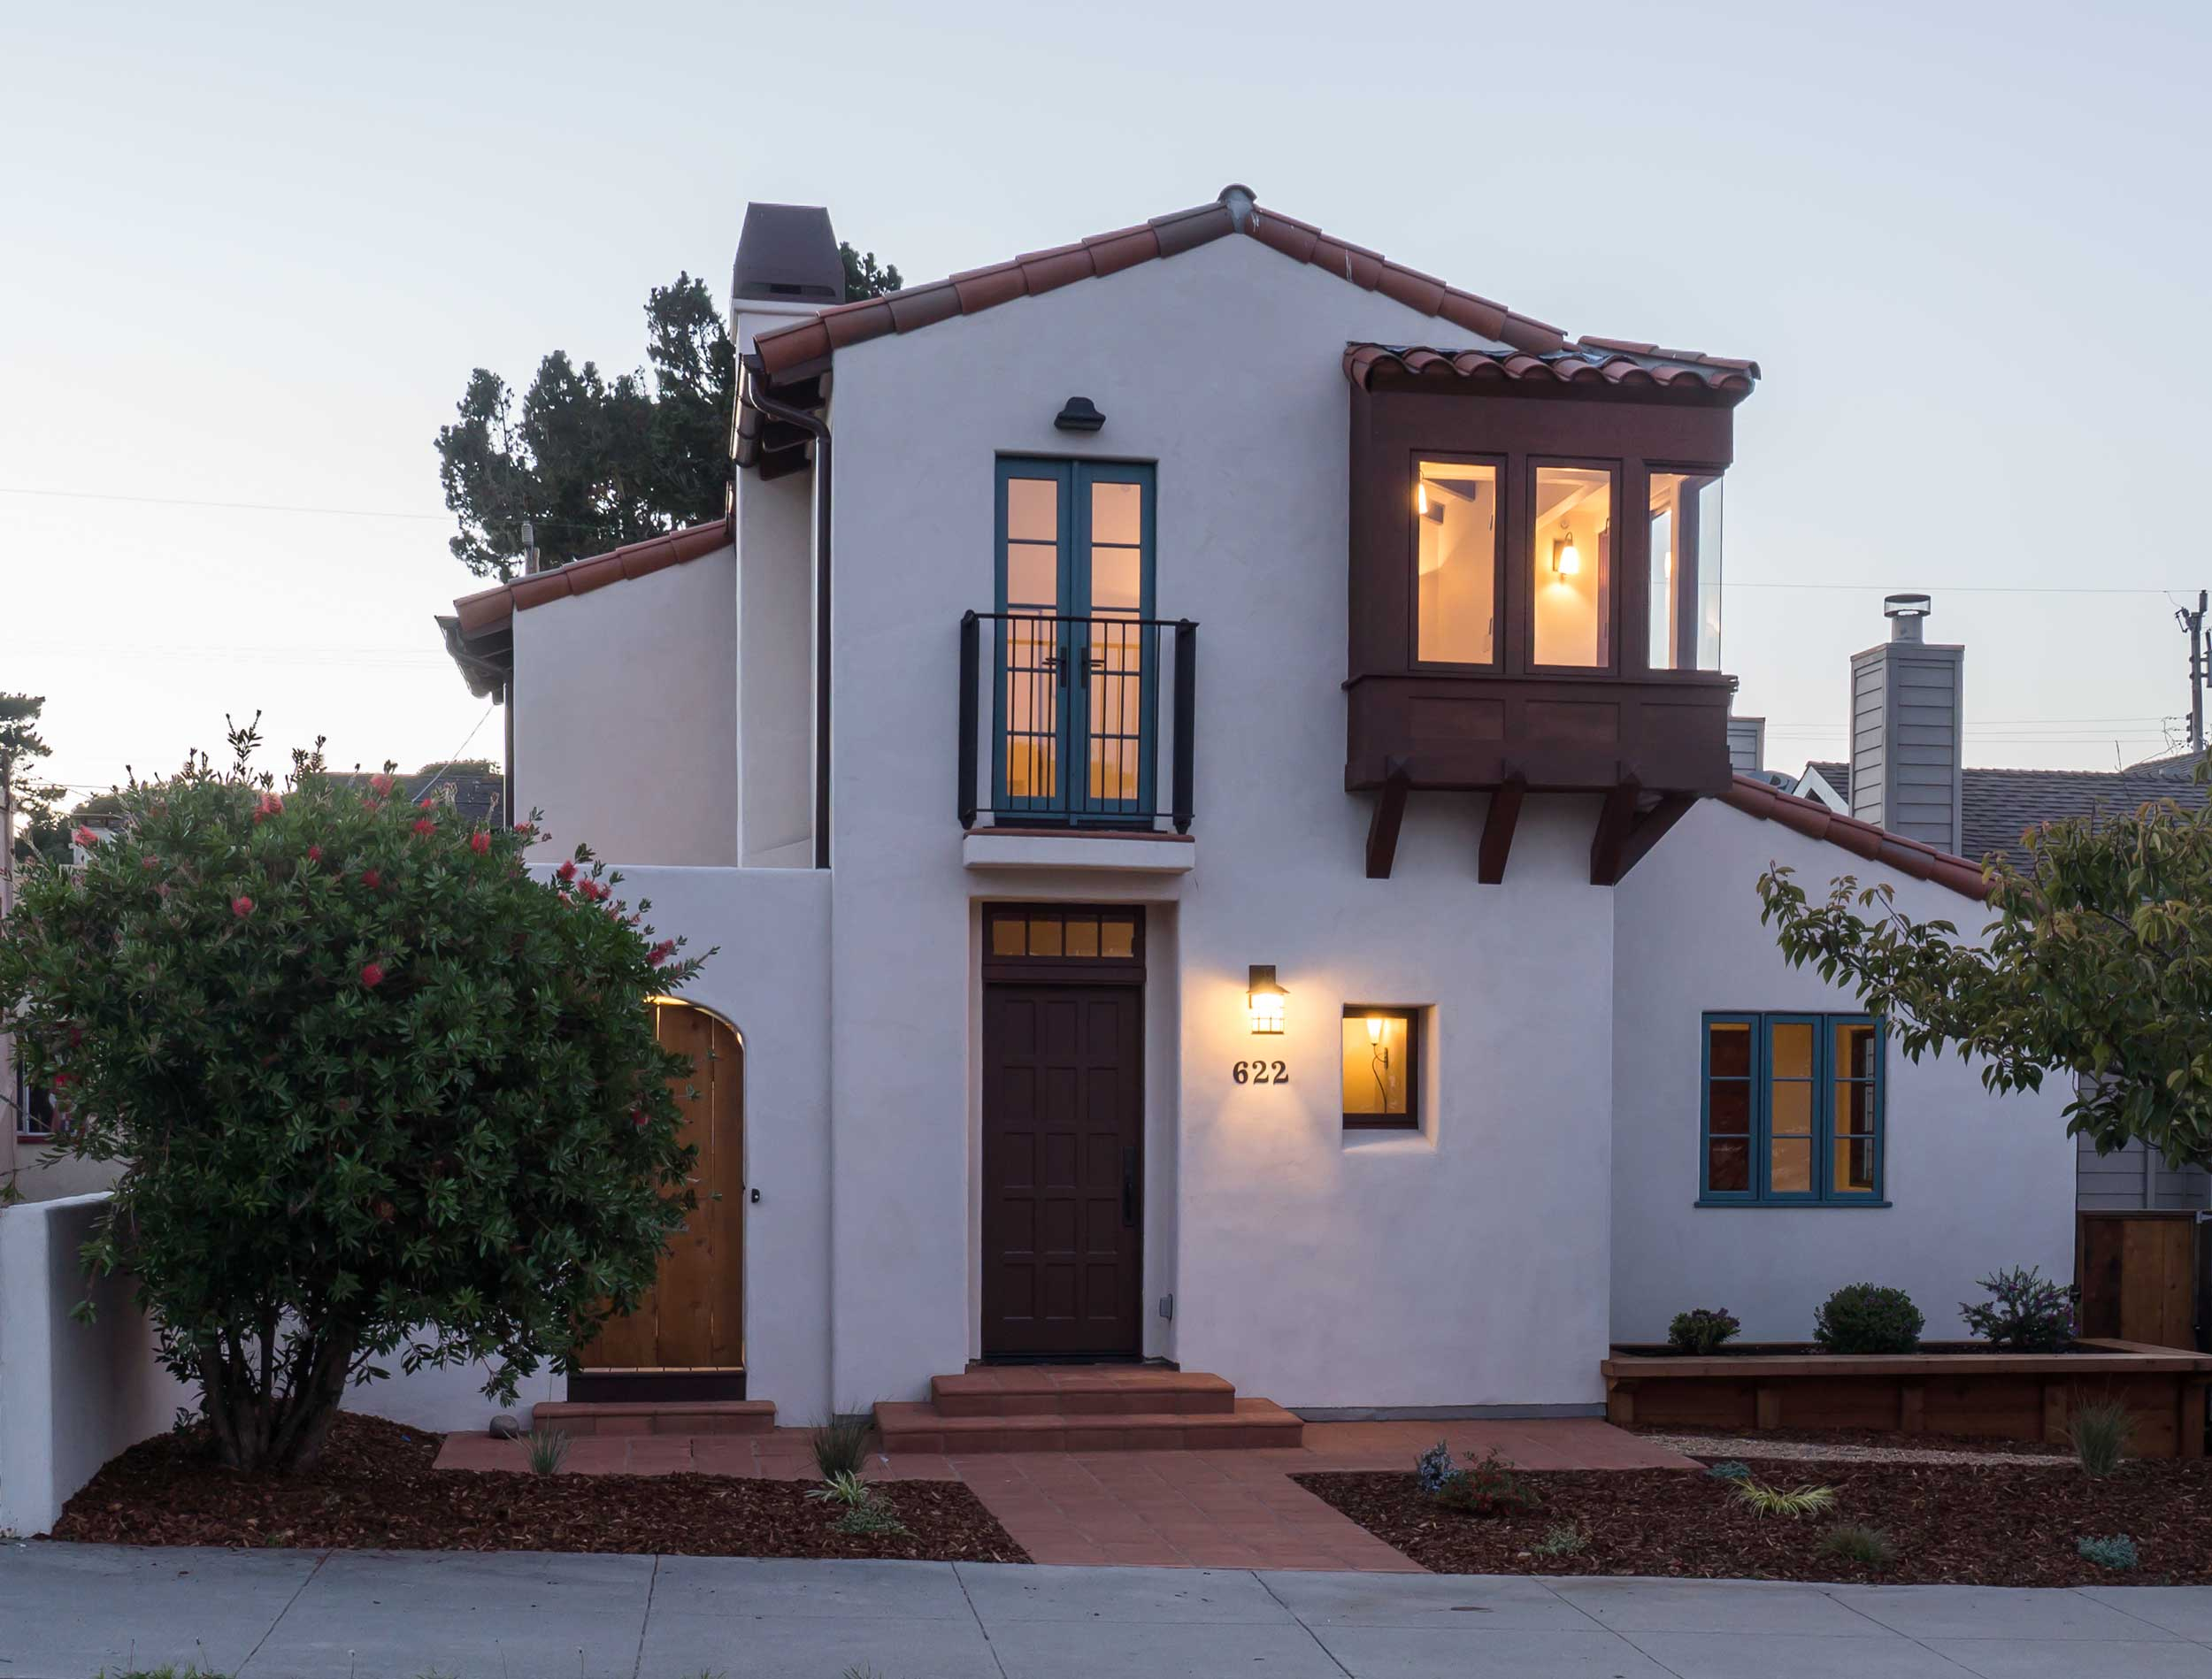 Pacific Grove Spanish Revival